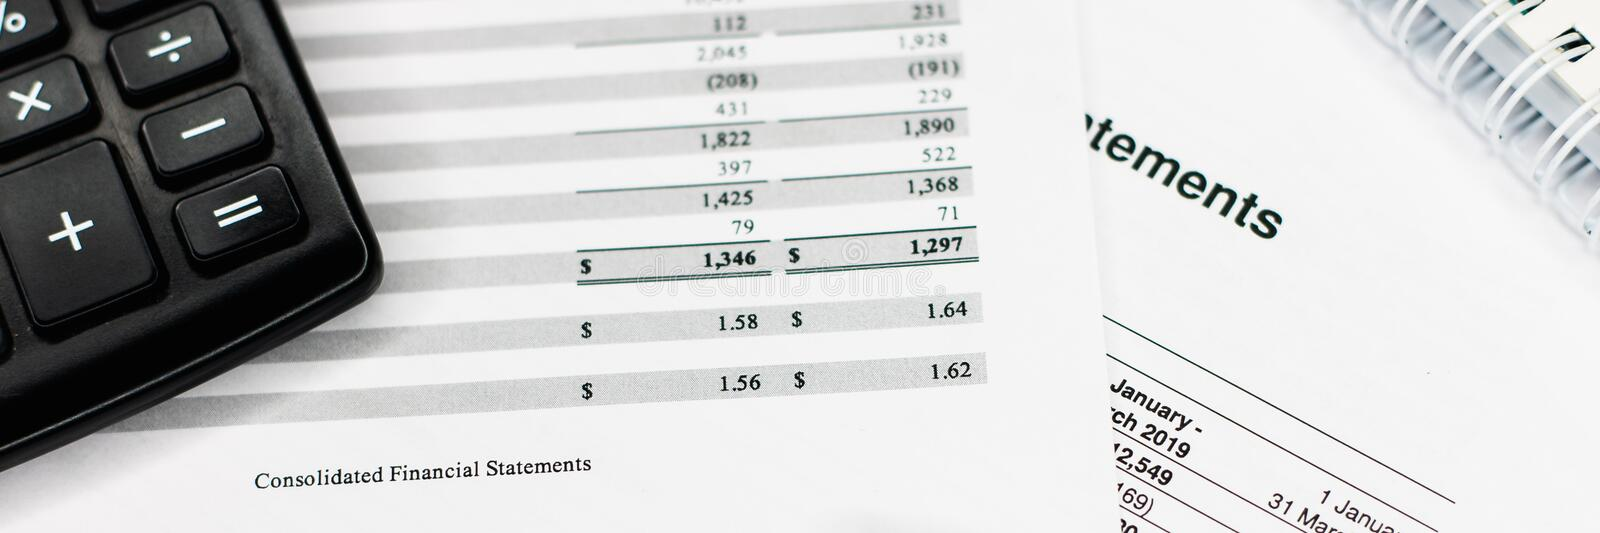 Income statement with detail list, accounting concept for small business. Wide banner, data, finance, money, portfolio, financial, analysis, bank, banking royalty free stock photo